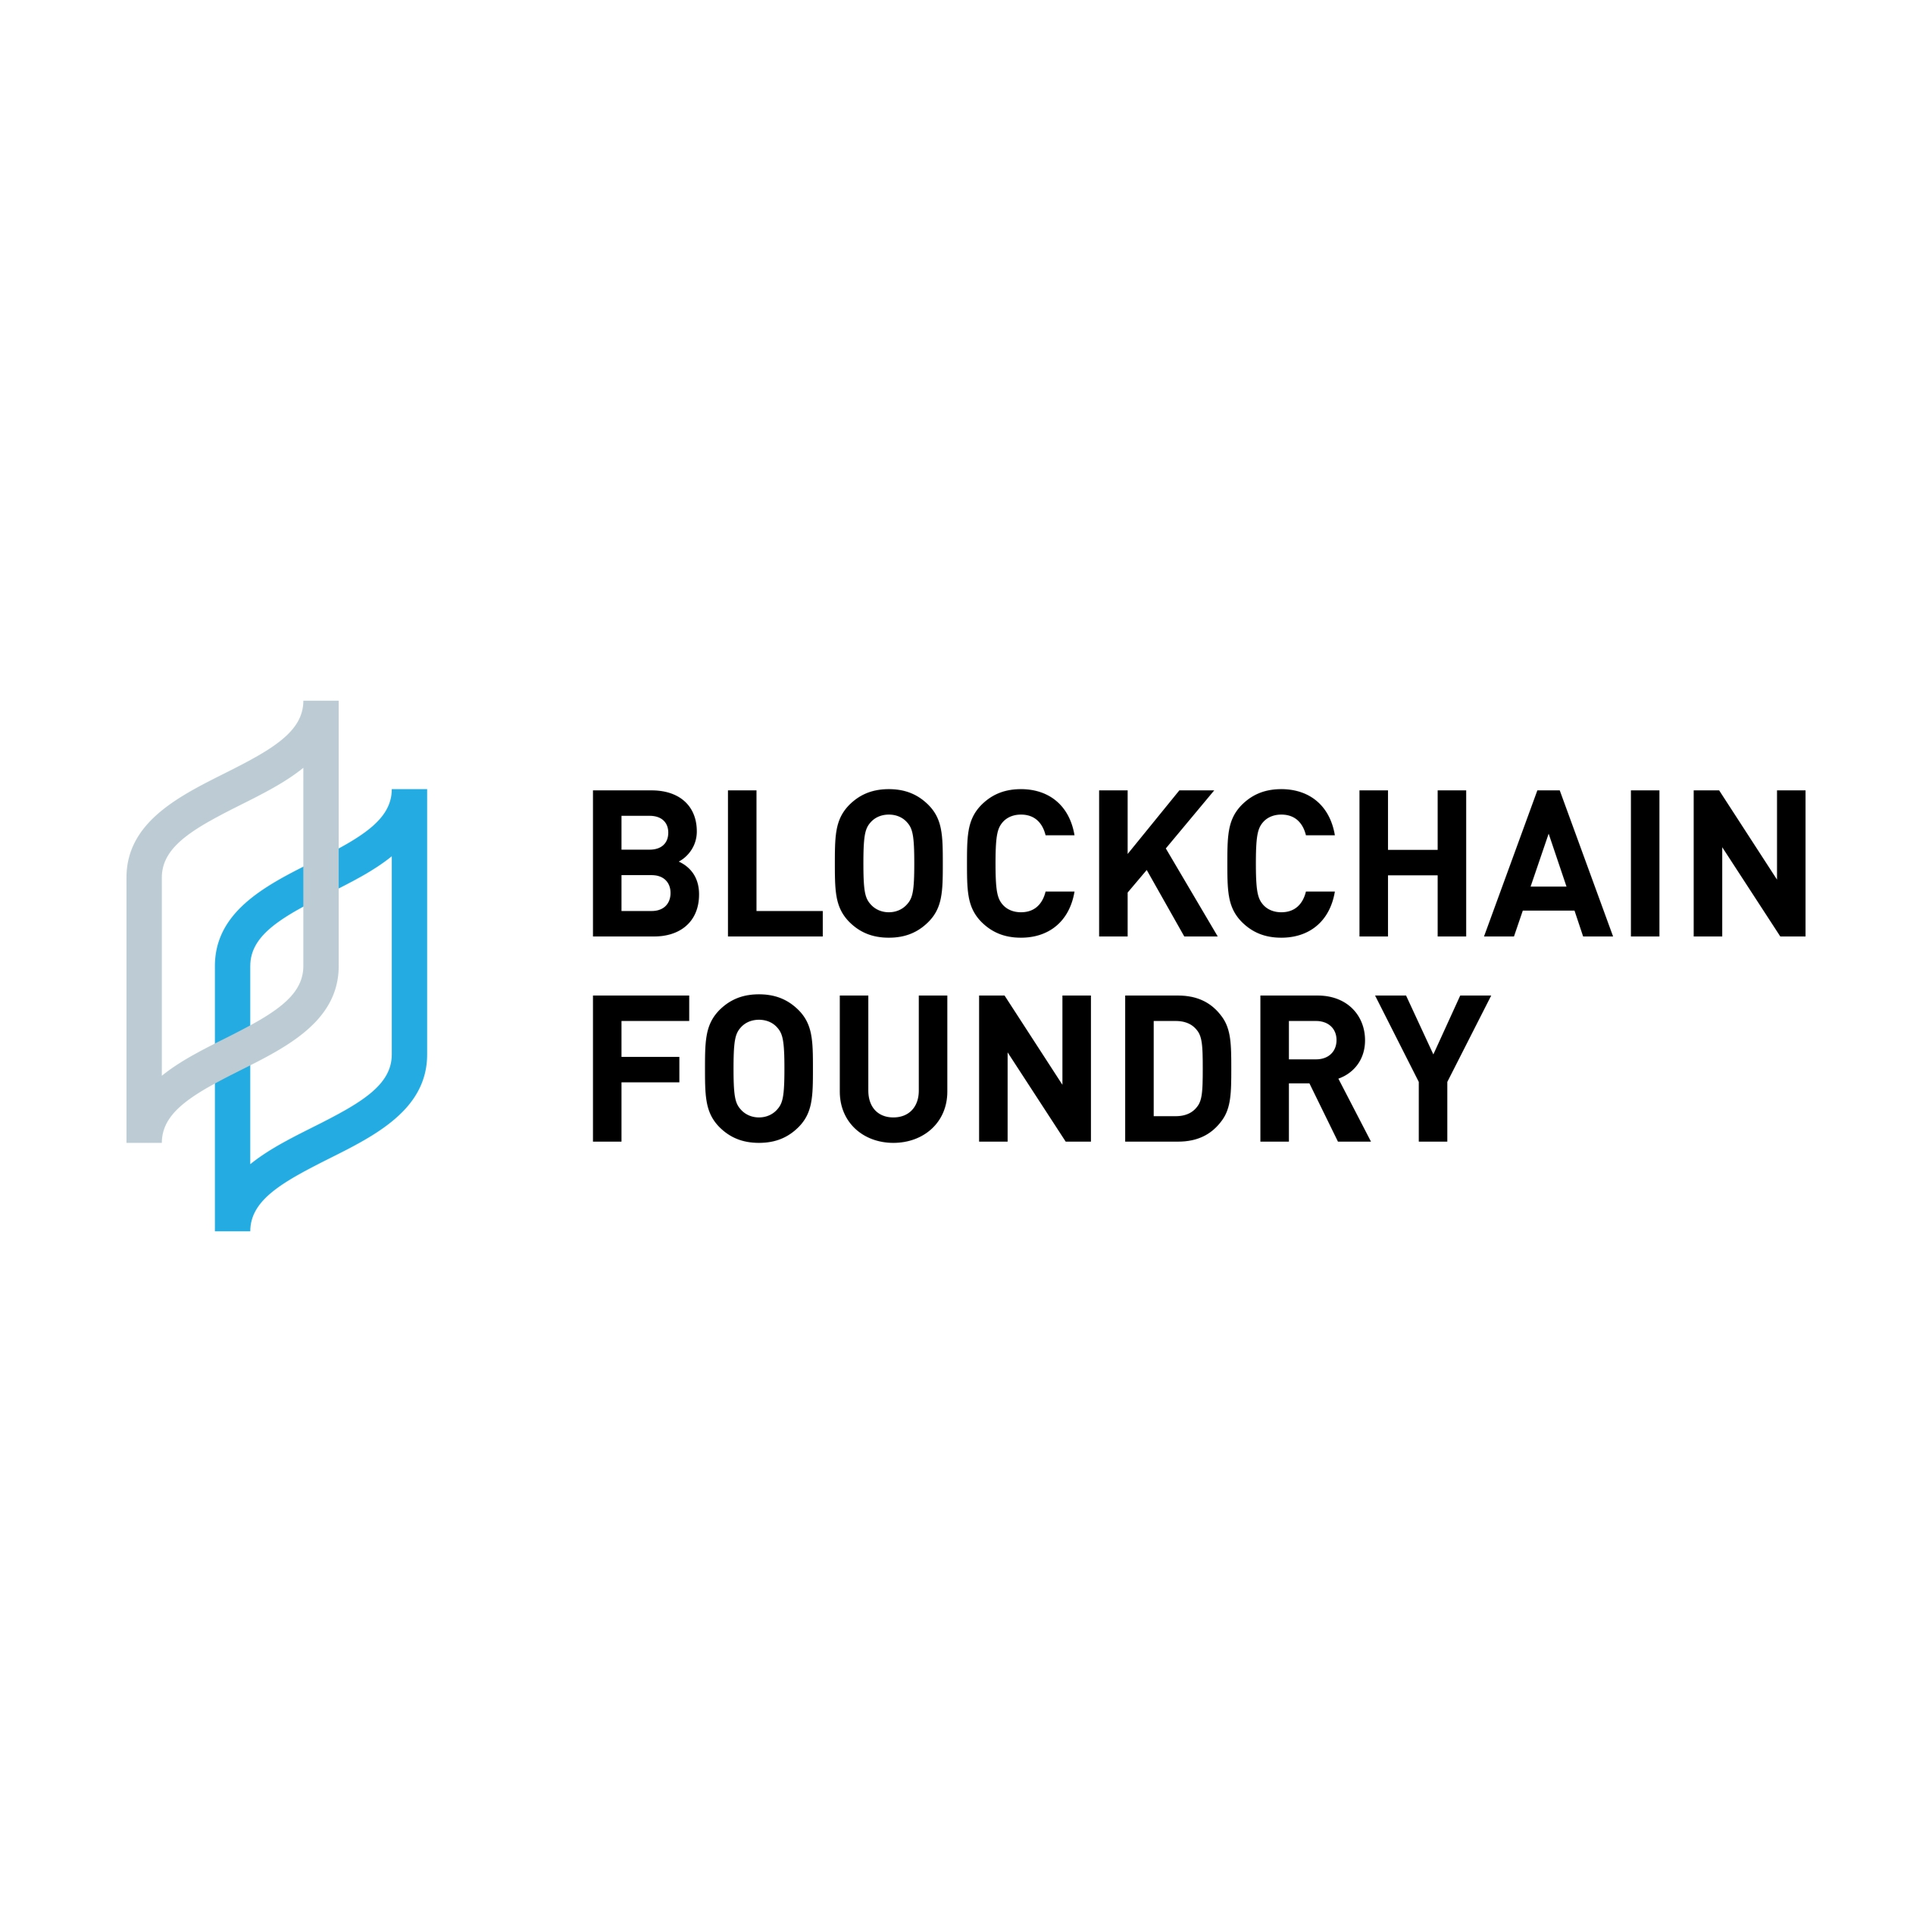 Blockchain Foundry Engages Investor Relations Consultant